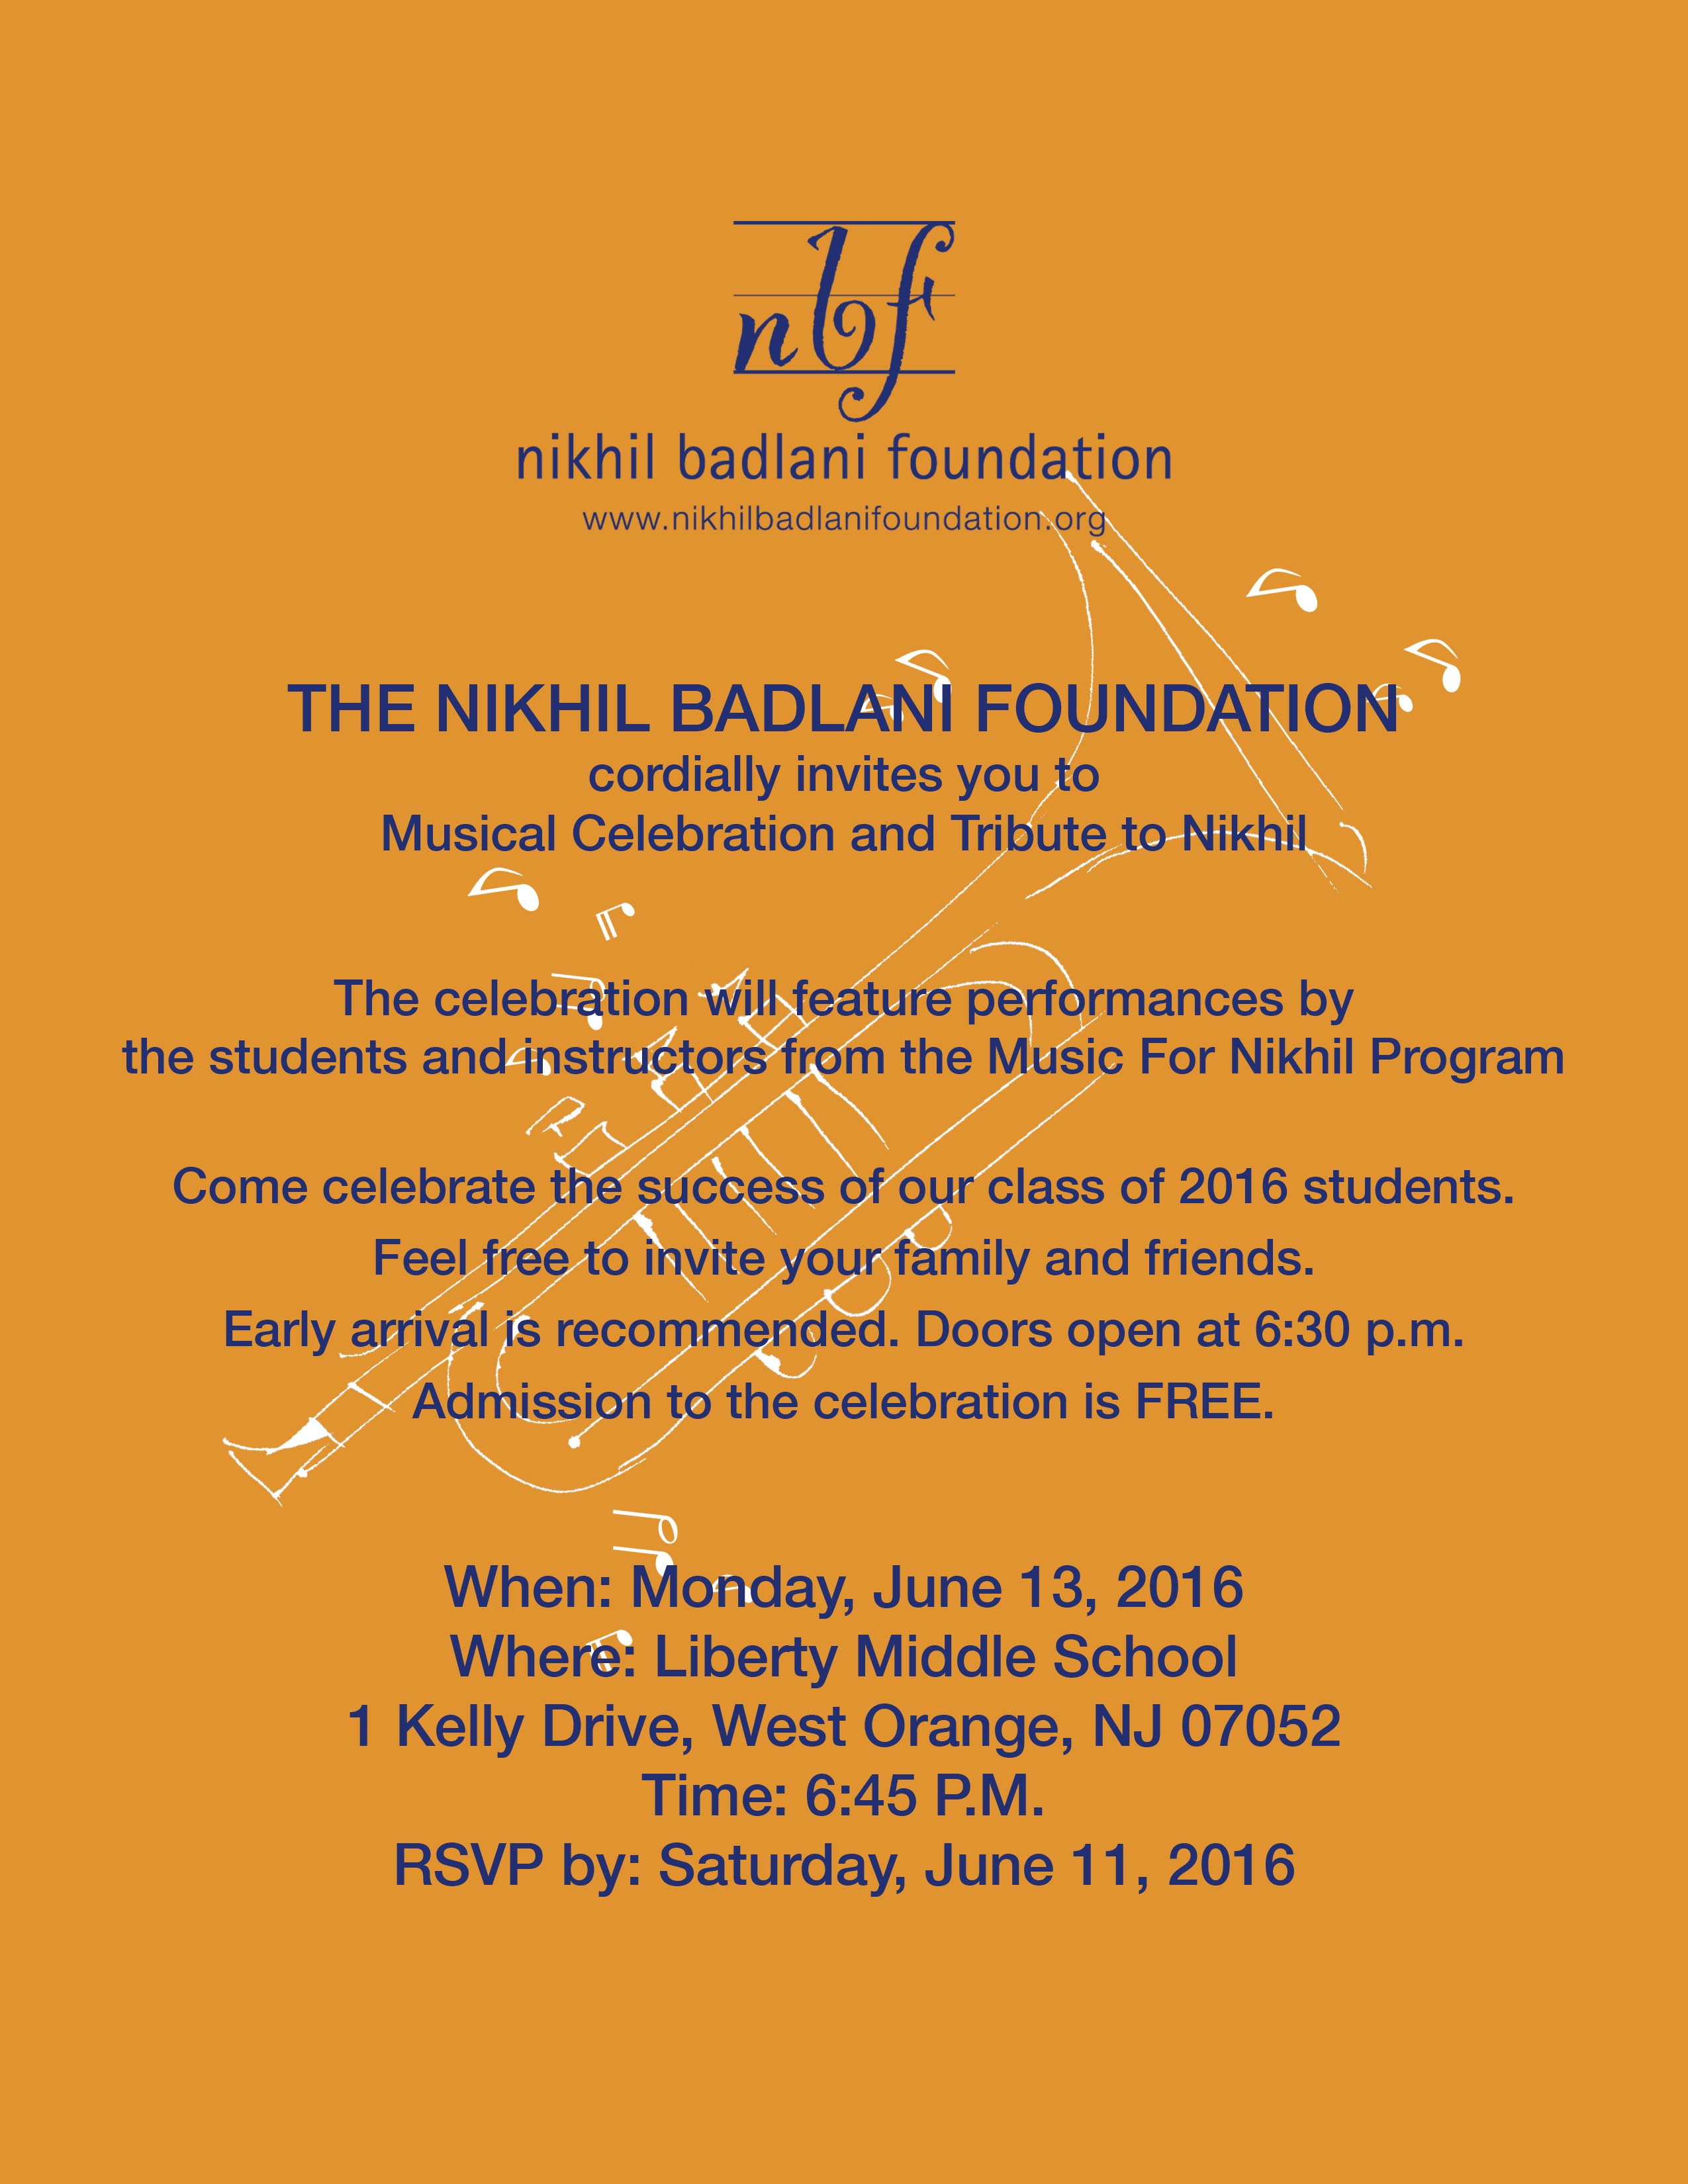 Music for Nikhil 2016 is on June 13 at 6:30 PM at Liberty Middle School, West Orange, NJ 07052